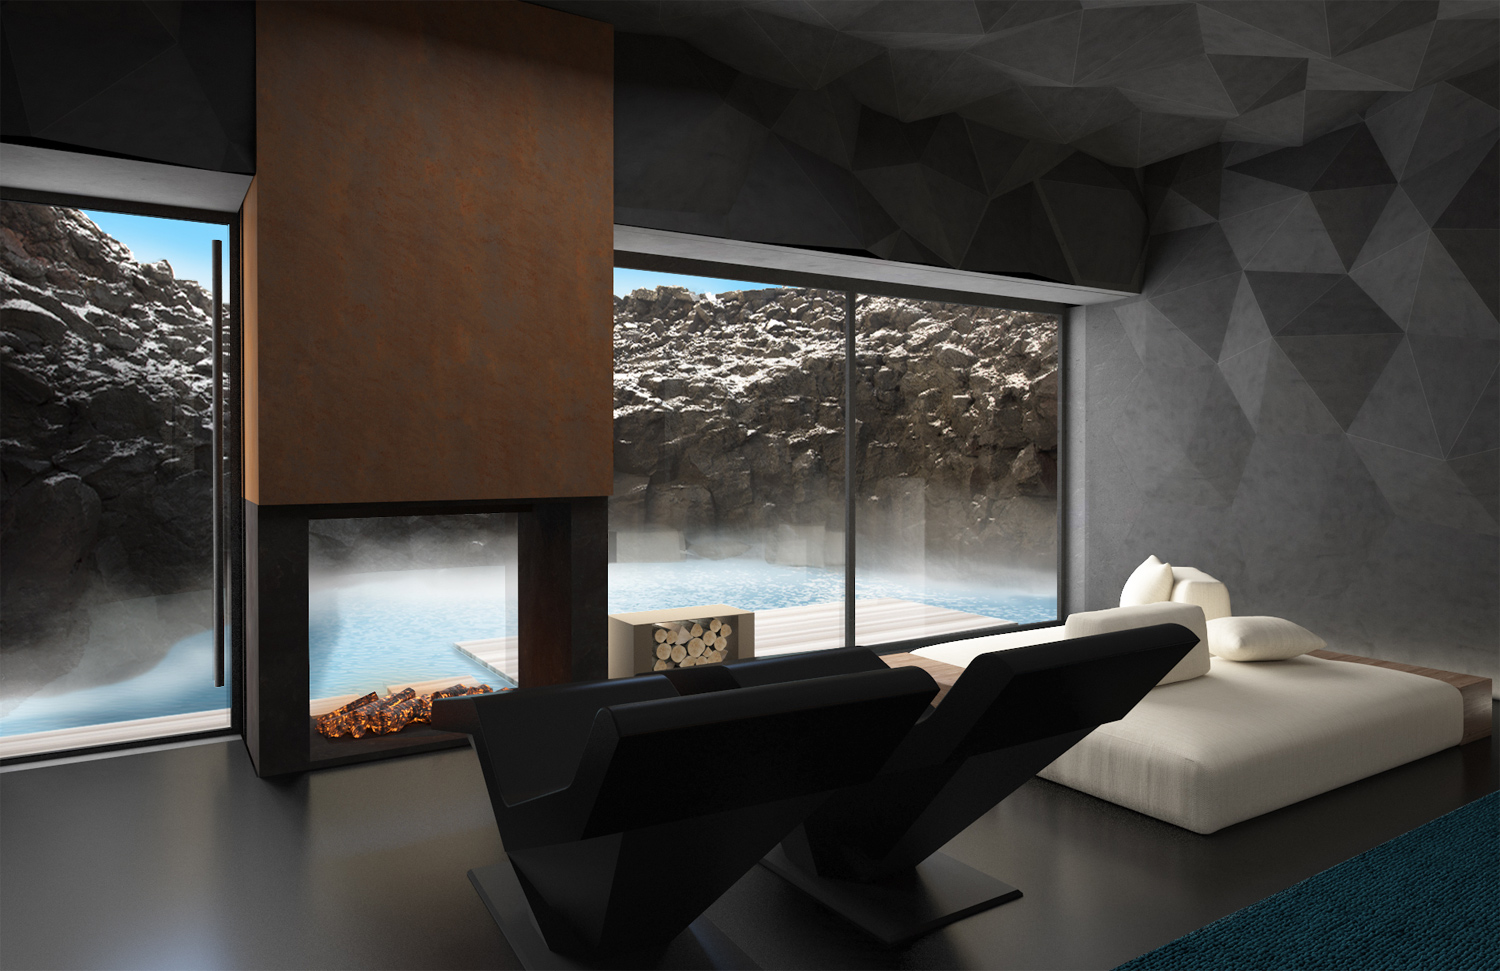 Iceland 39 s blue lagoon gets its first luxury hotel for Hotels near the blue lagoon iceland